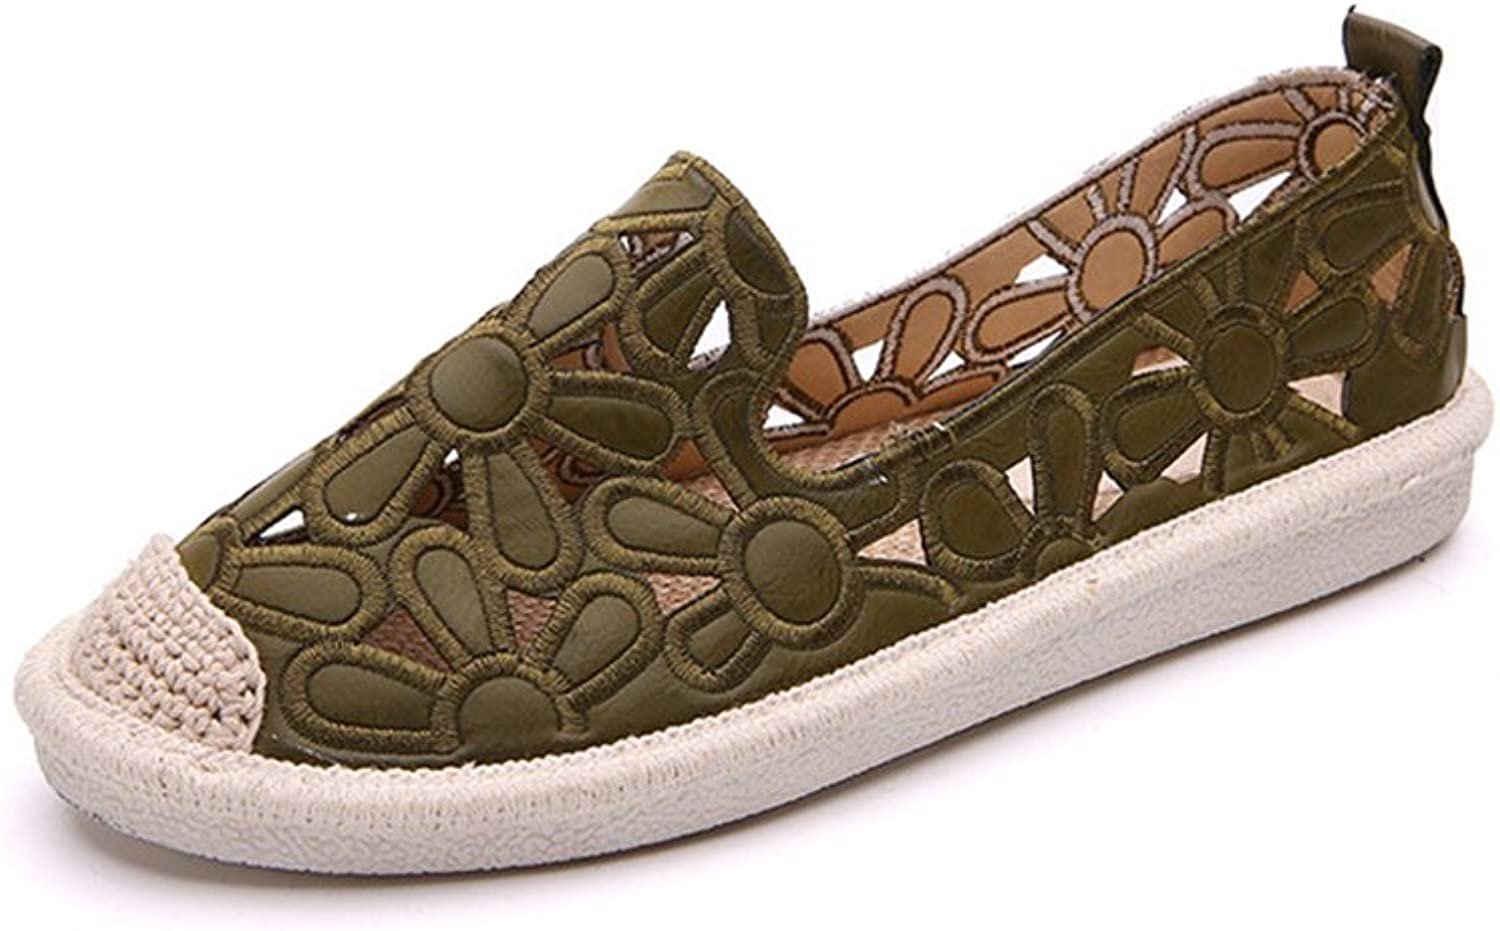 Espadrille Womens Comfort Flats Slip-ONS shoes with Imprint Comfort Technology